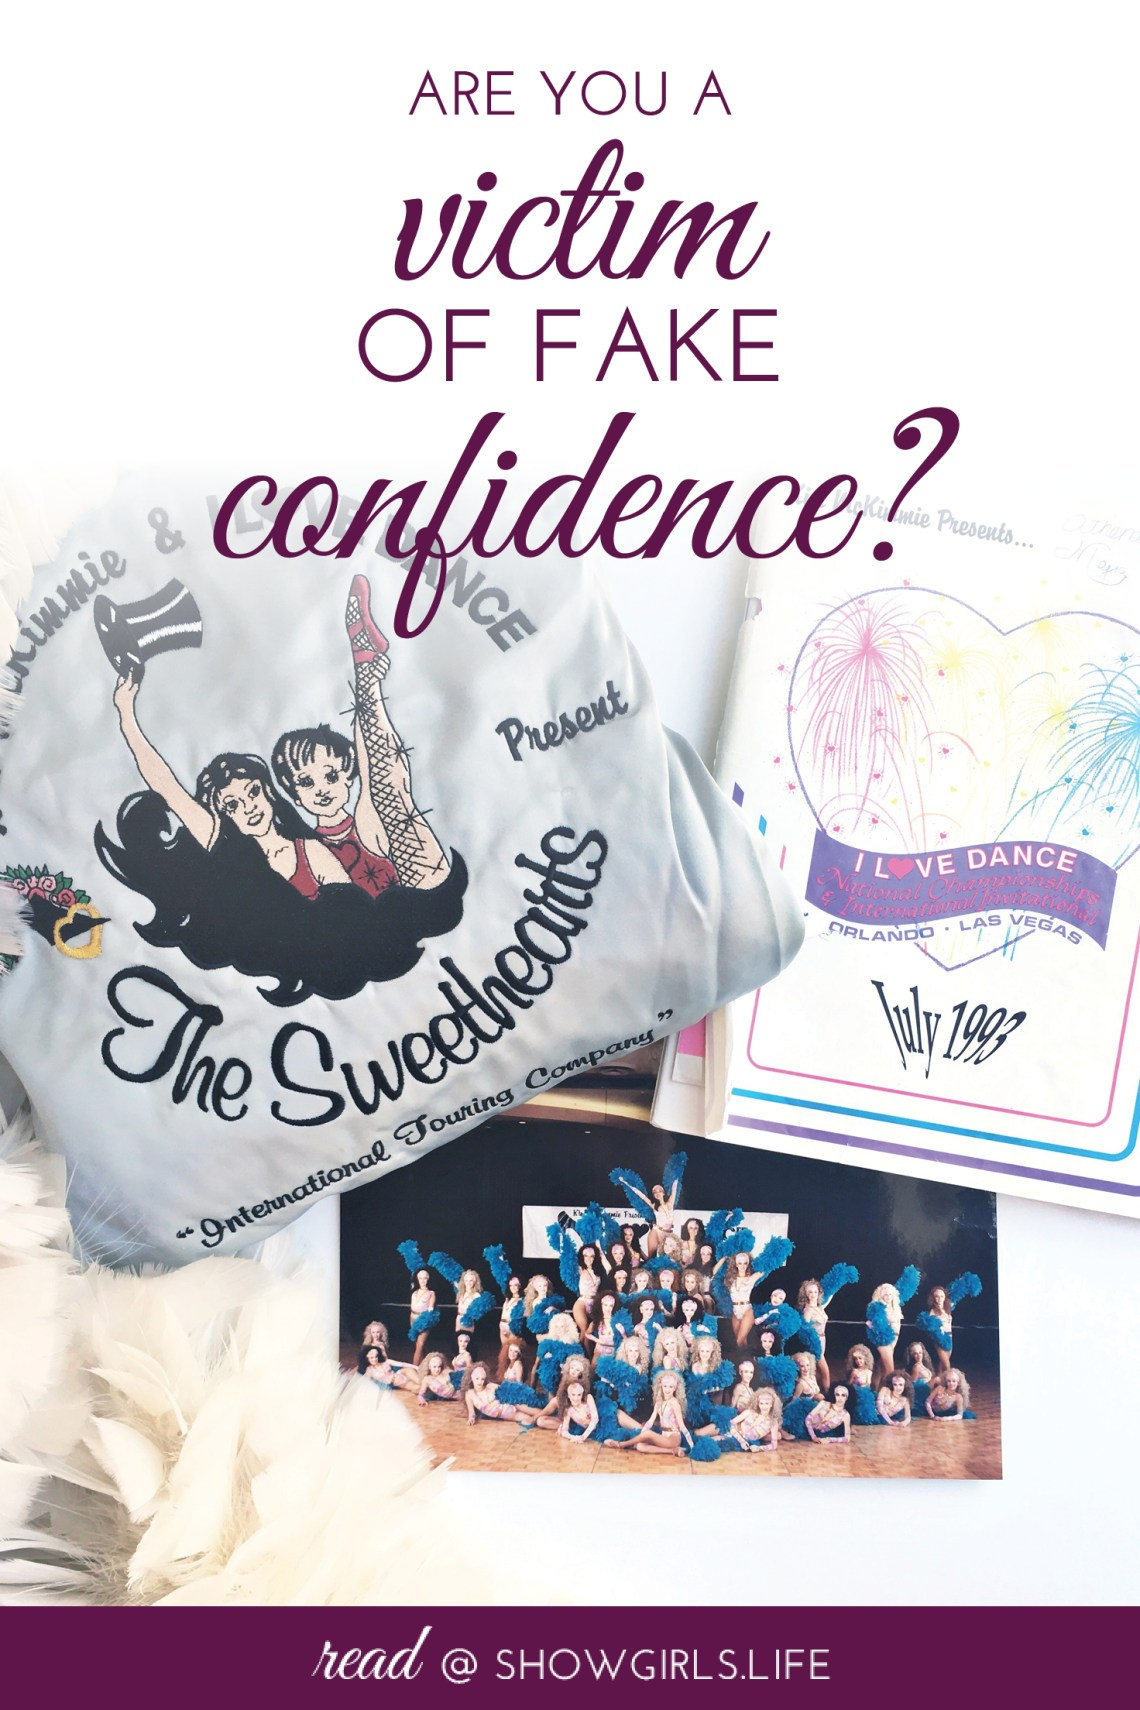 Showgirls.Life – Are You a Victim of Fake Confidence?